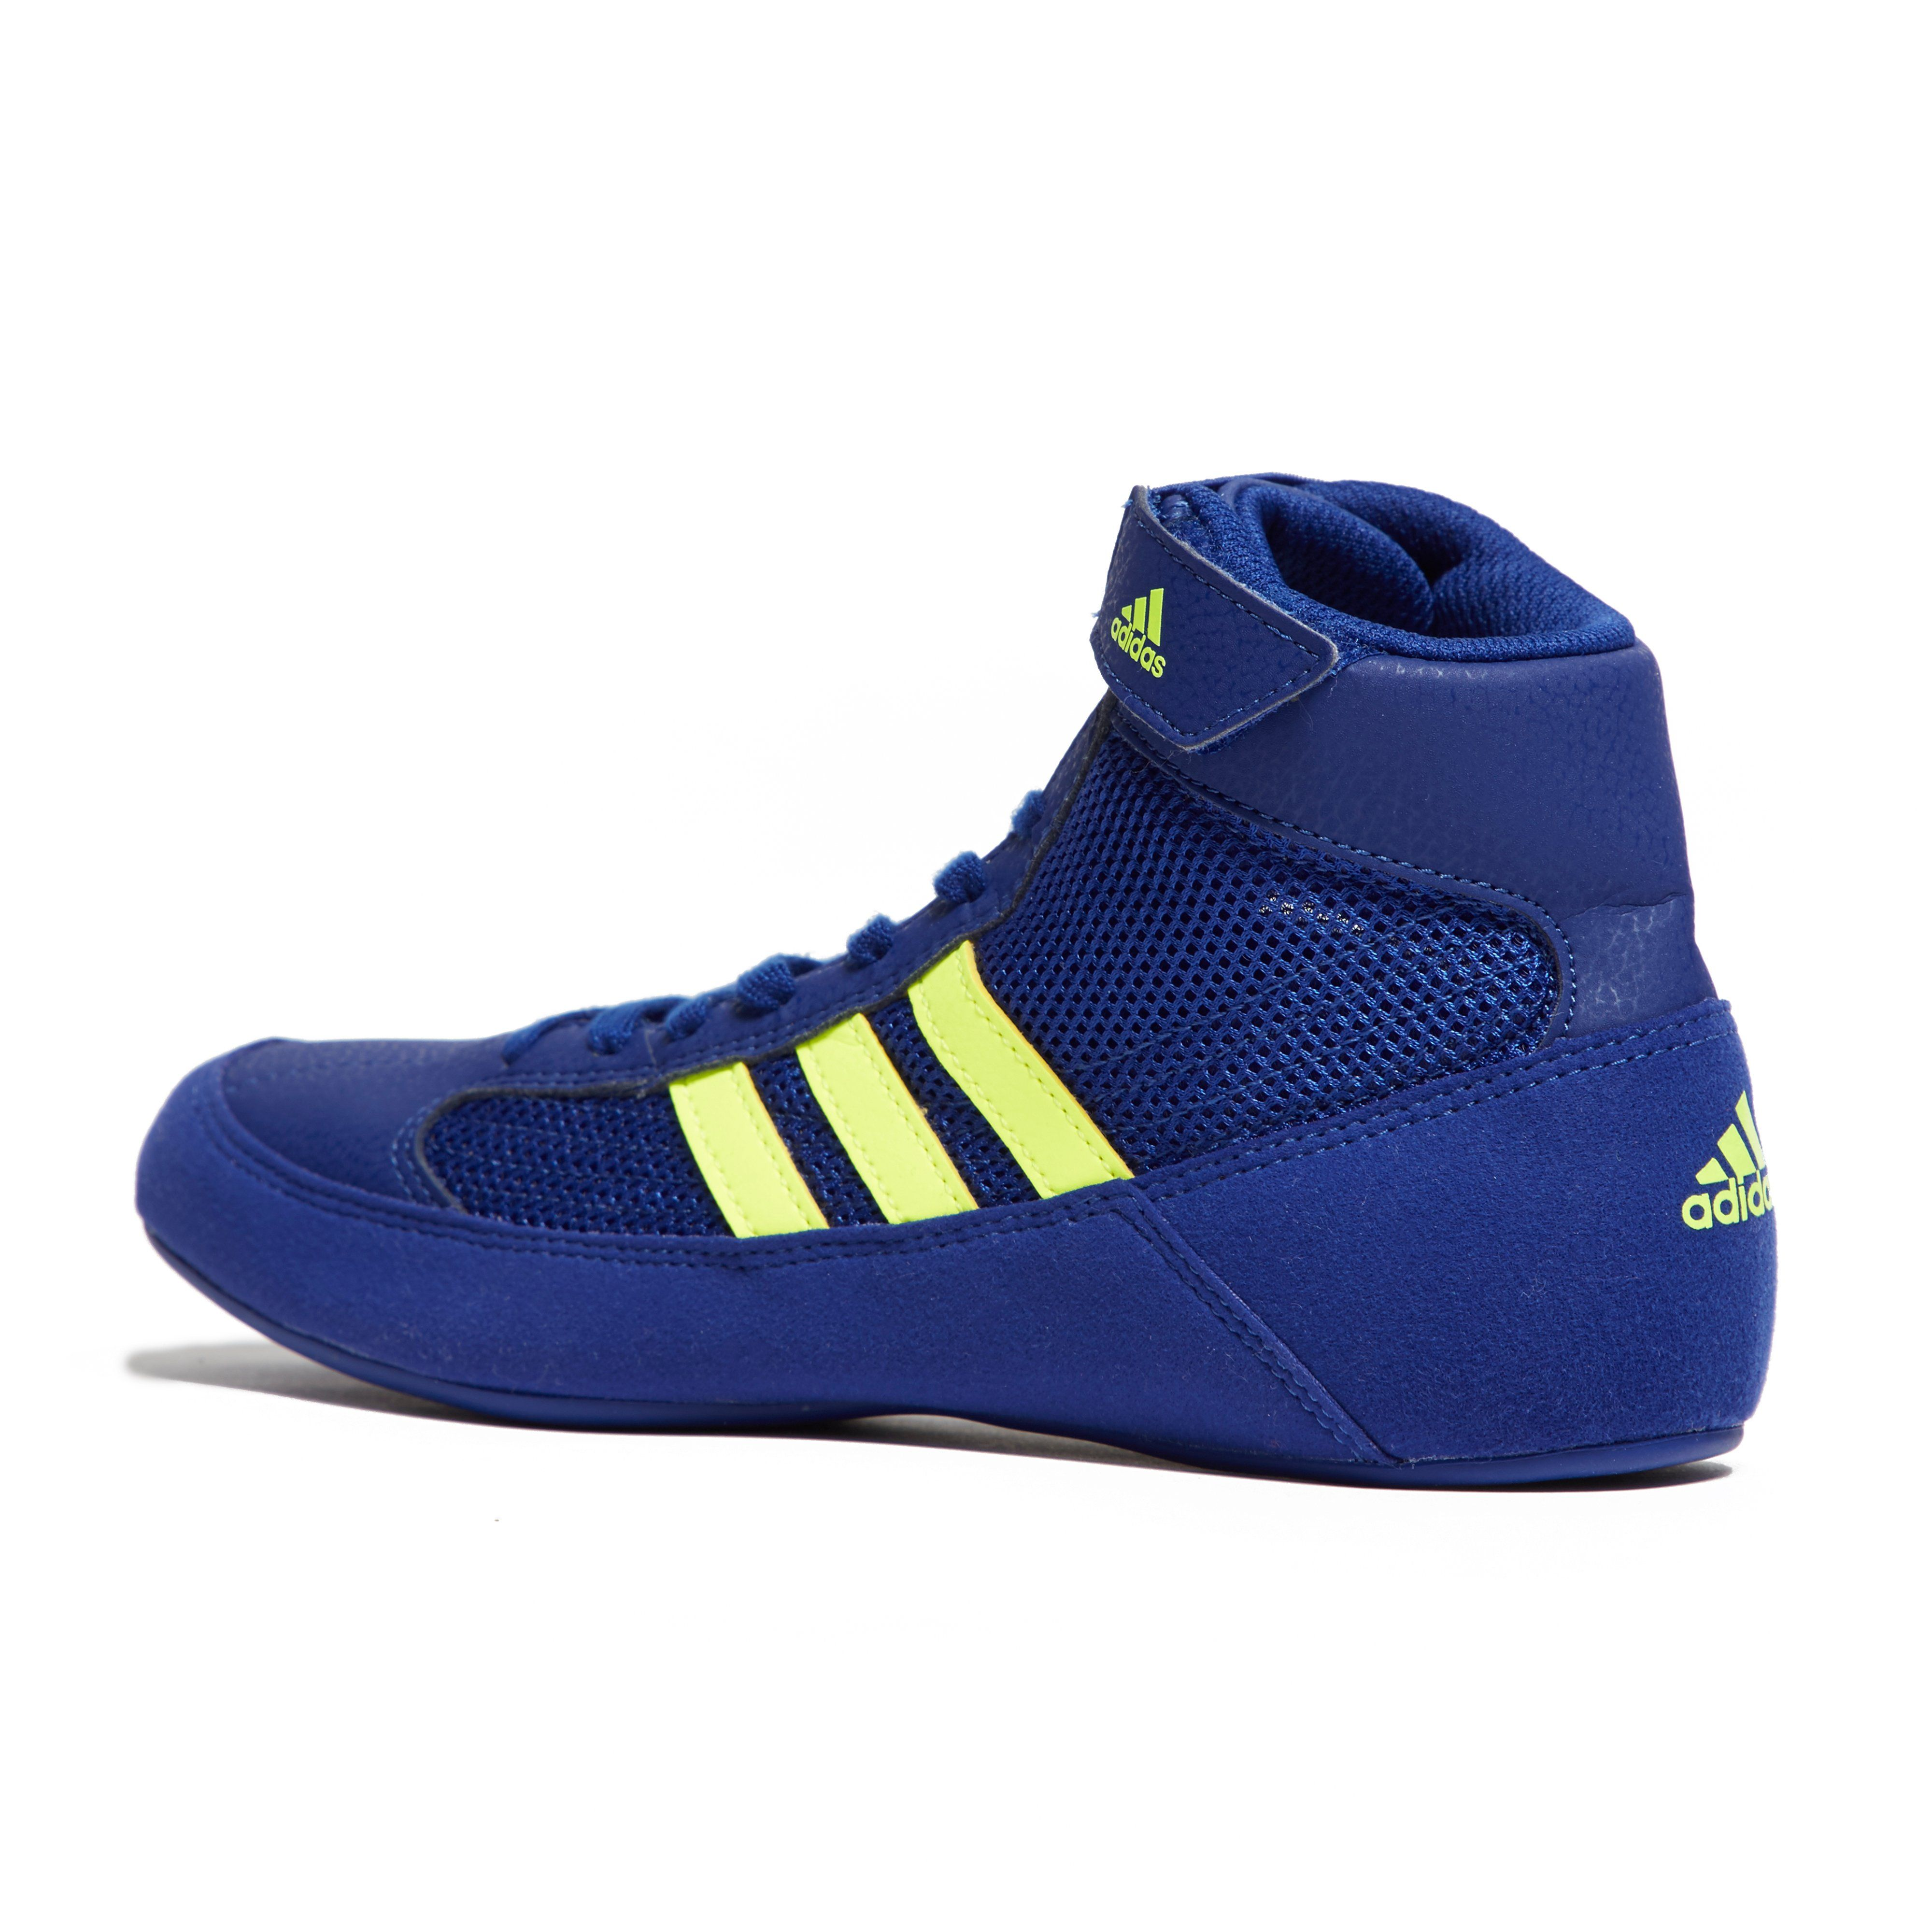 adidas Havoc Junior Wrestling Boots